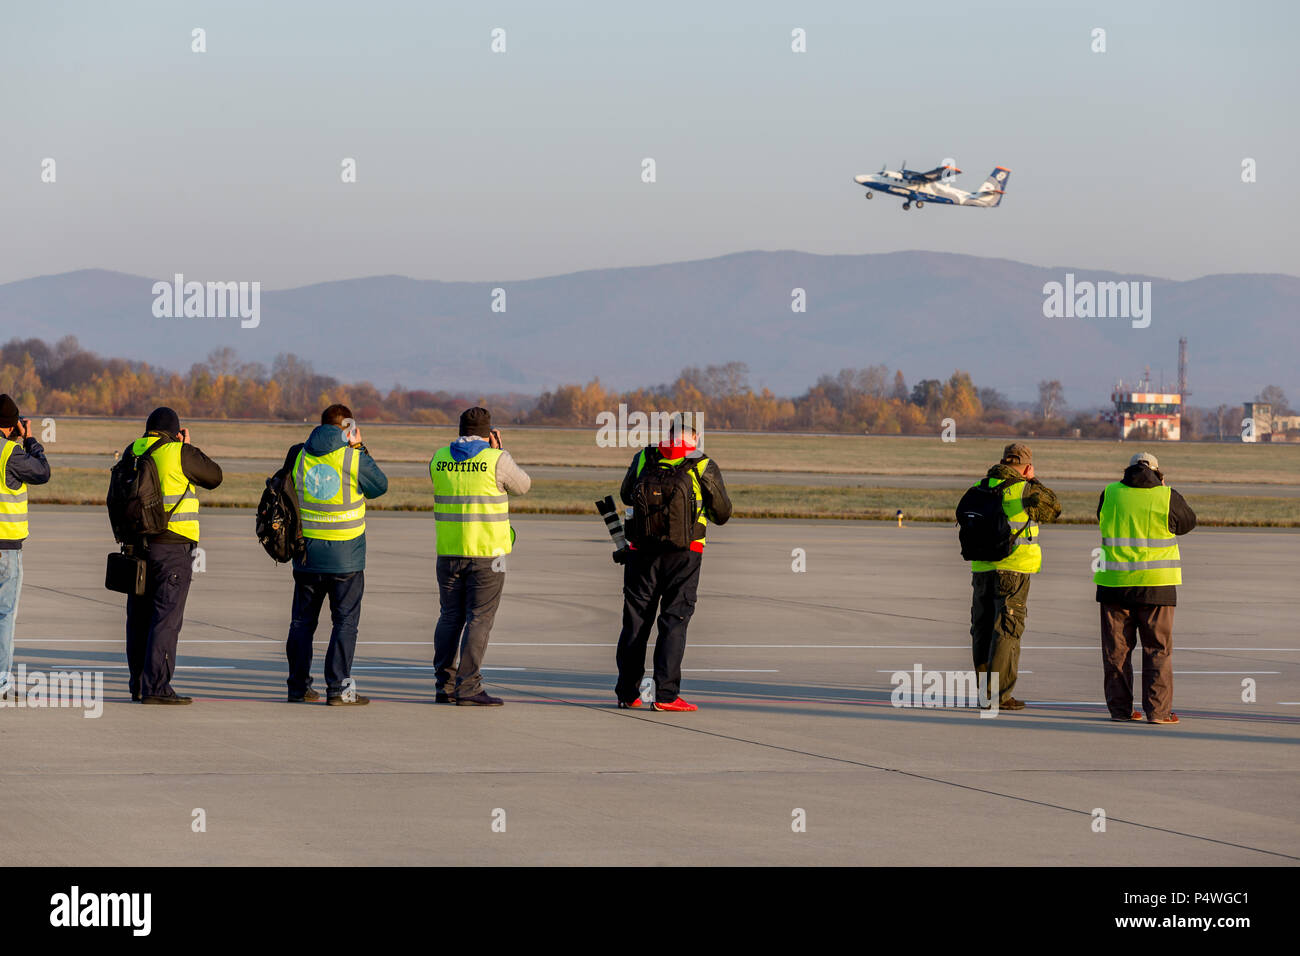 Russia, Vladivostok, 10/13/2017. Photographers make photos of plane taking off. DHC-6 of Aurora Airlines. Plane spotting, hobby, aviation. - Stock Image